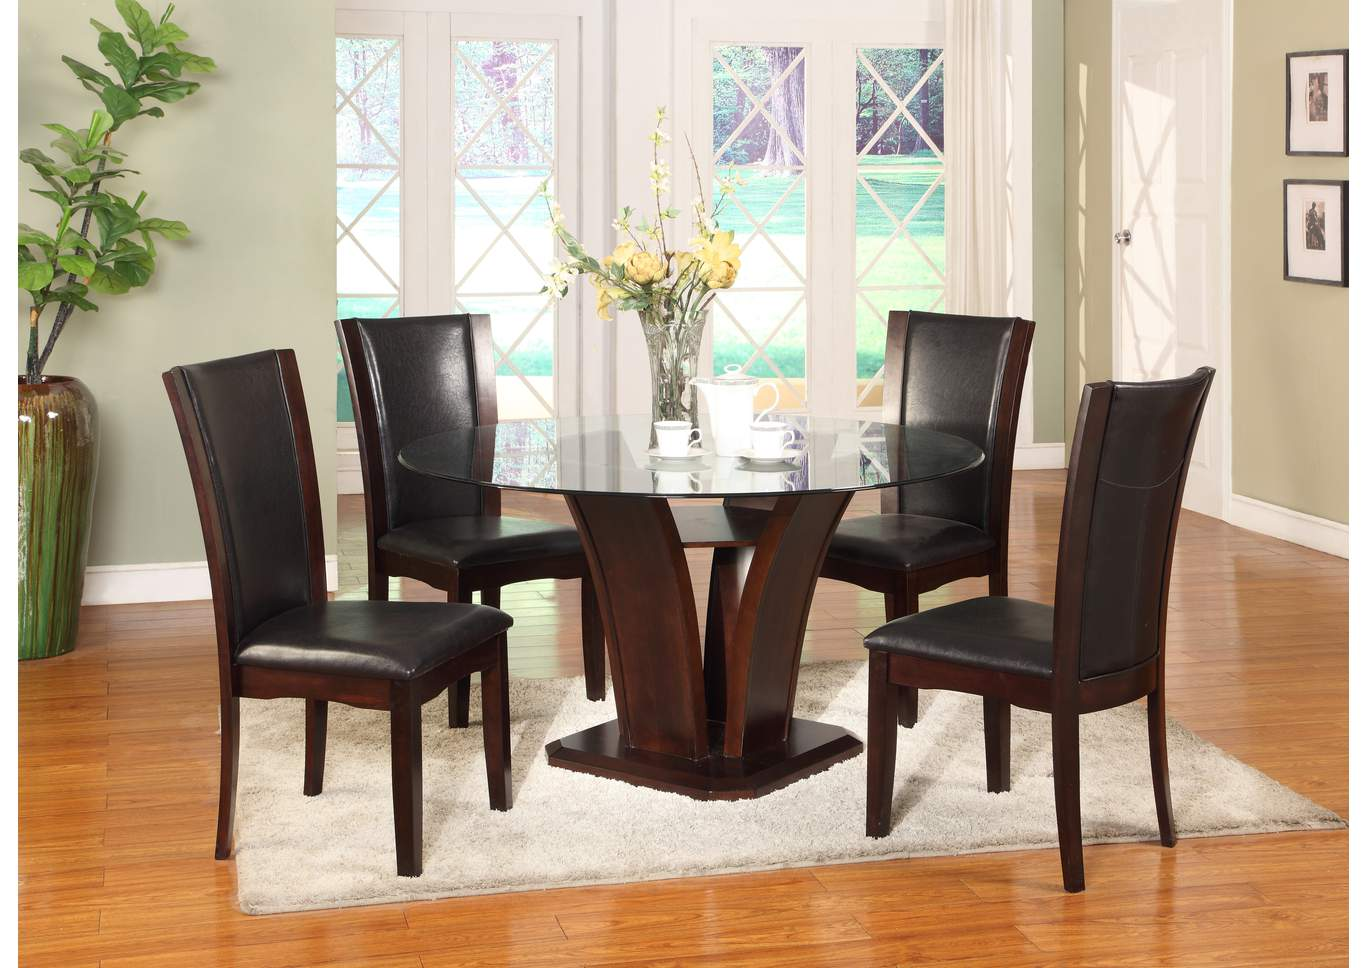 Camelia Glass Round Dining Room Table w/4 Side Chairs,Crown Mark